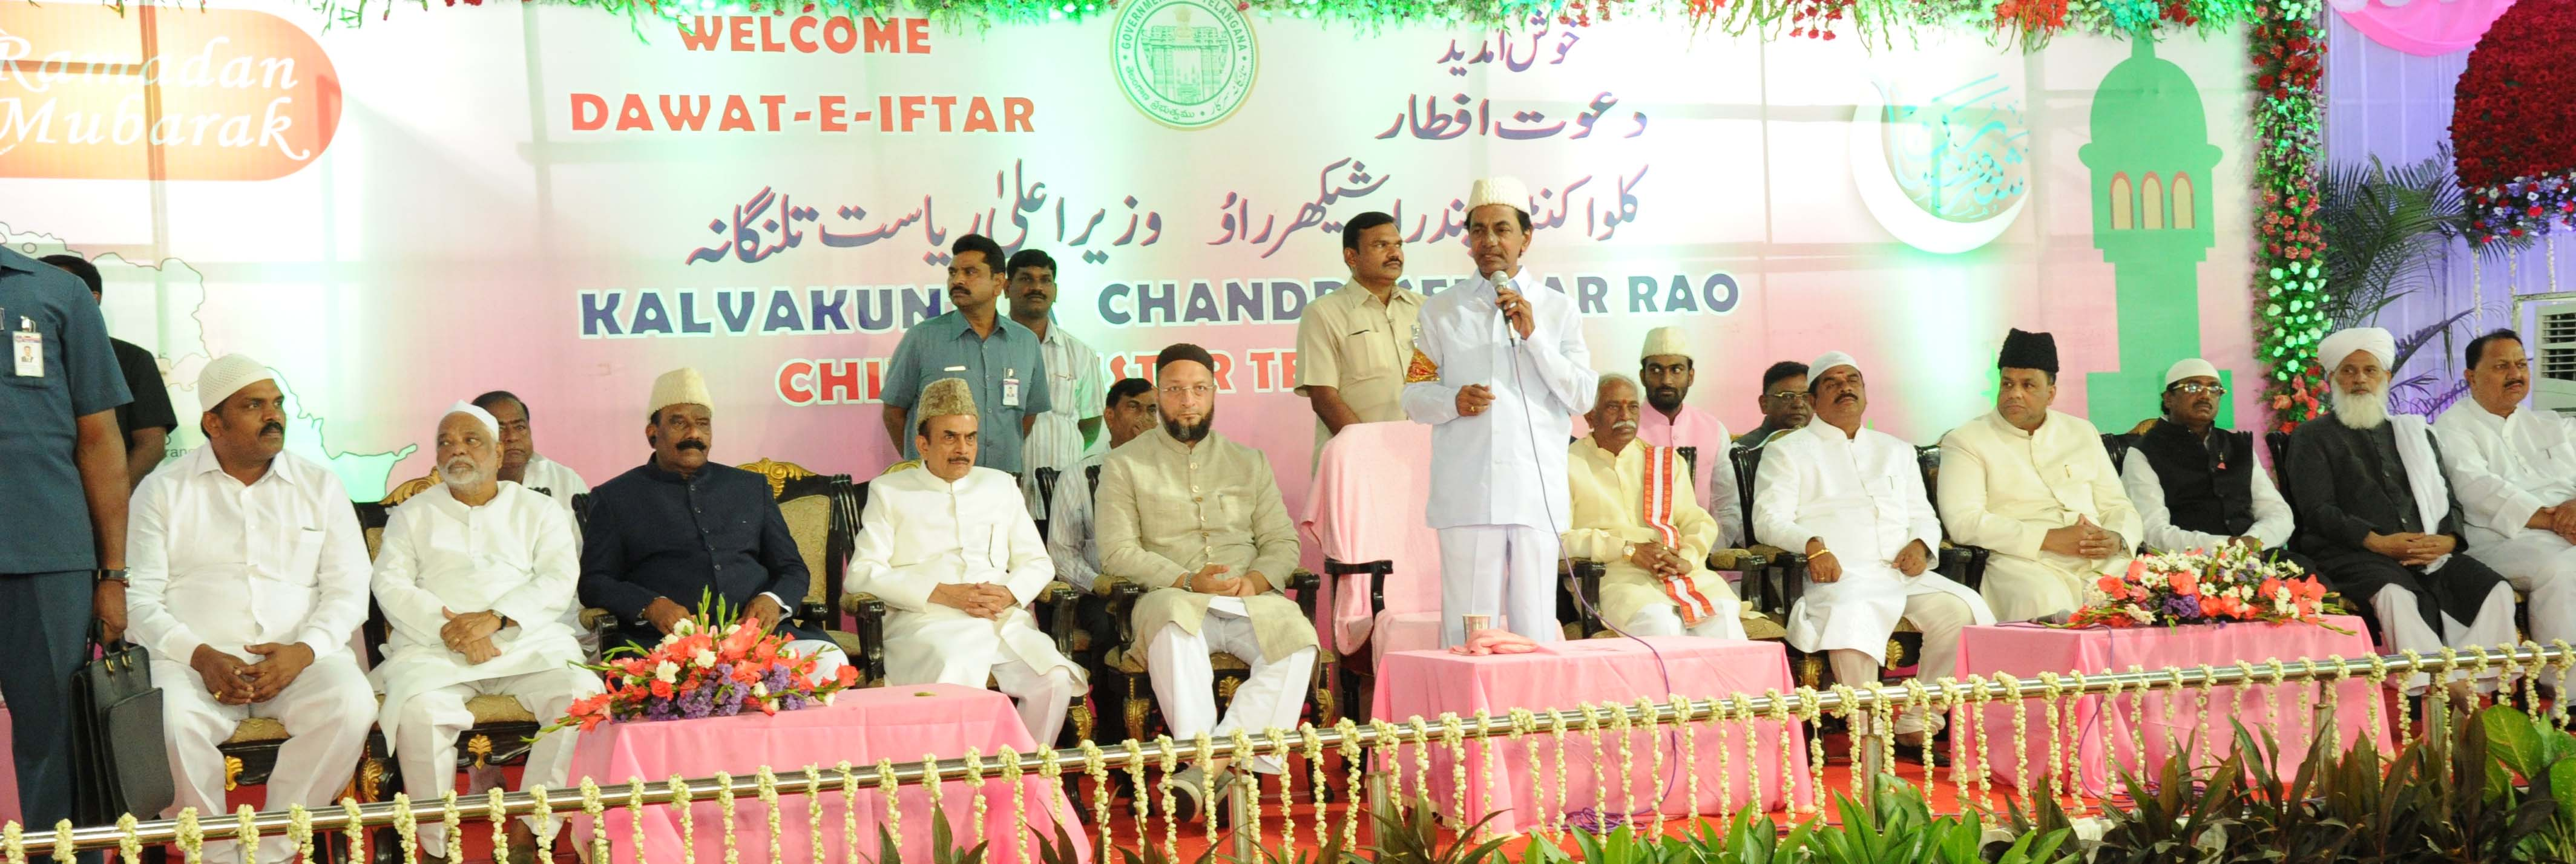 Telangana Chief Minister KCR, Deputy Chief Minister Mahmood ali, MIM party leader Asaduddin and other TRS senior leaders, Police Officers participated in the Iftar Party at Nizam college on 26.6.2016